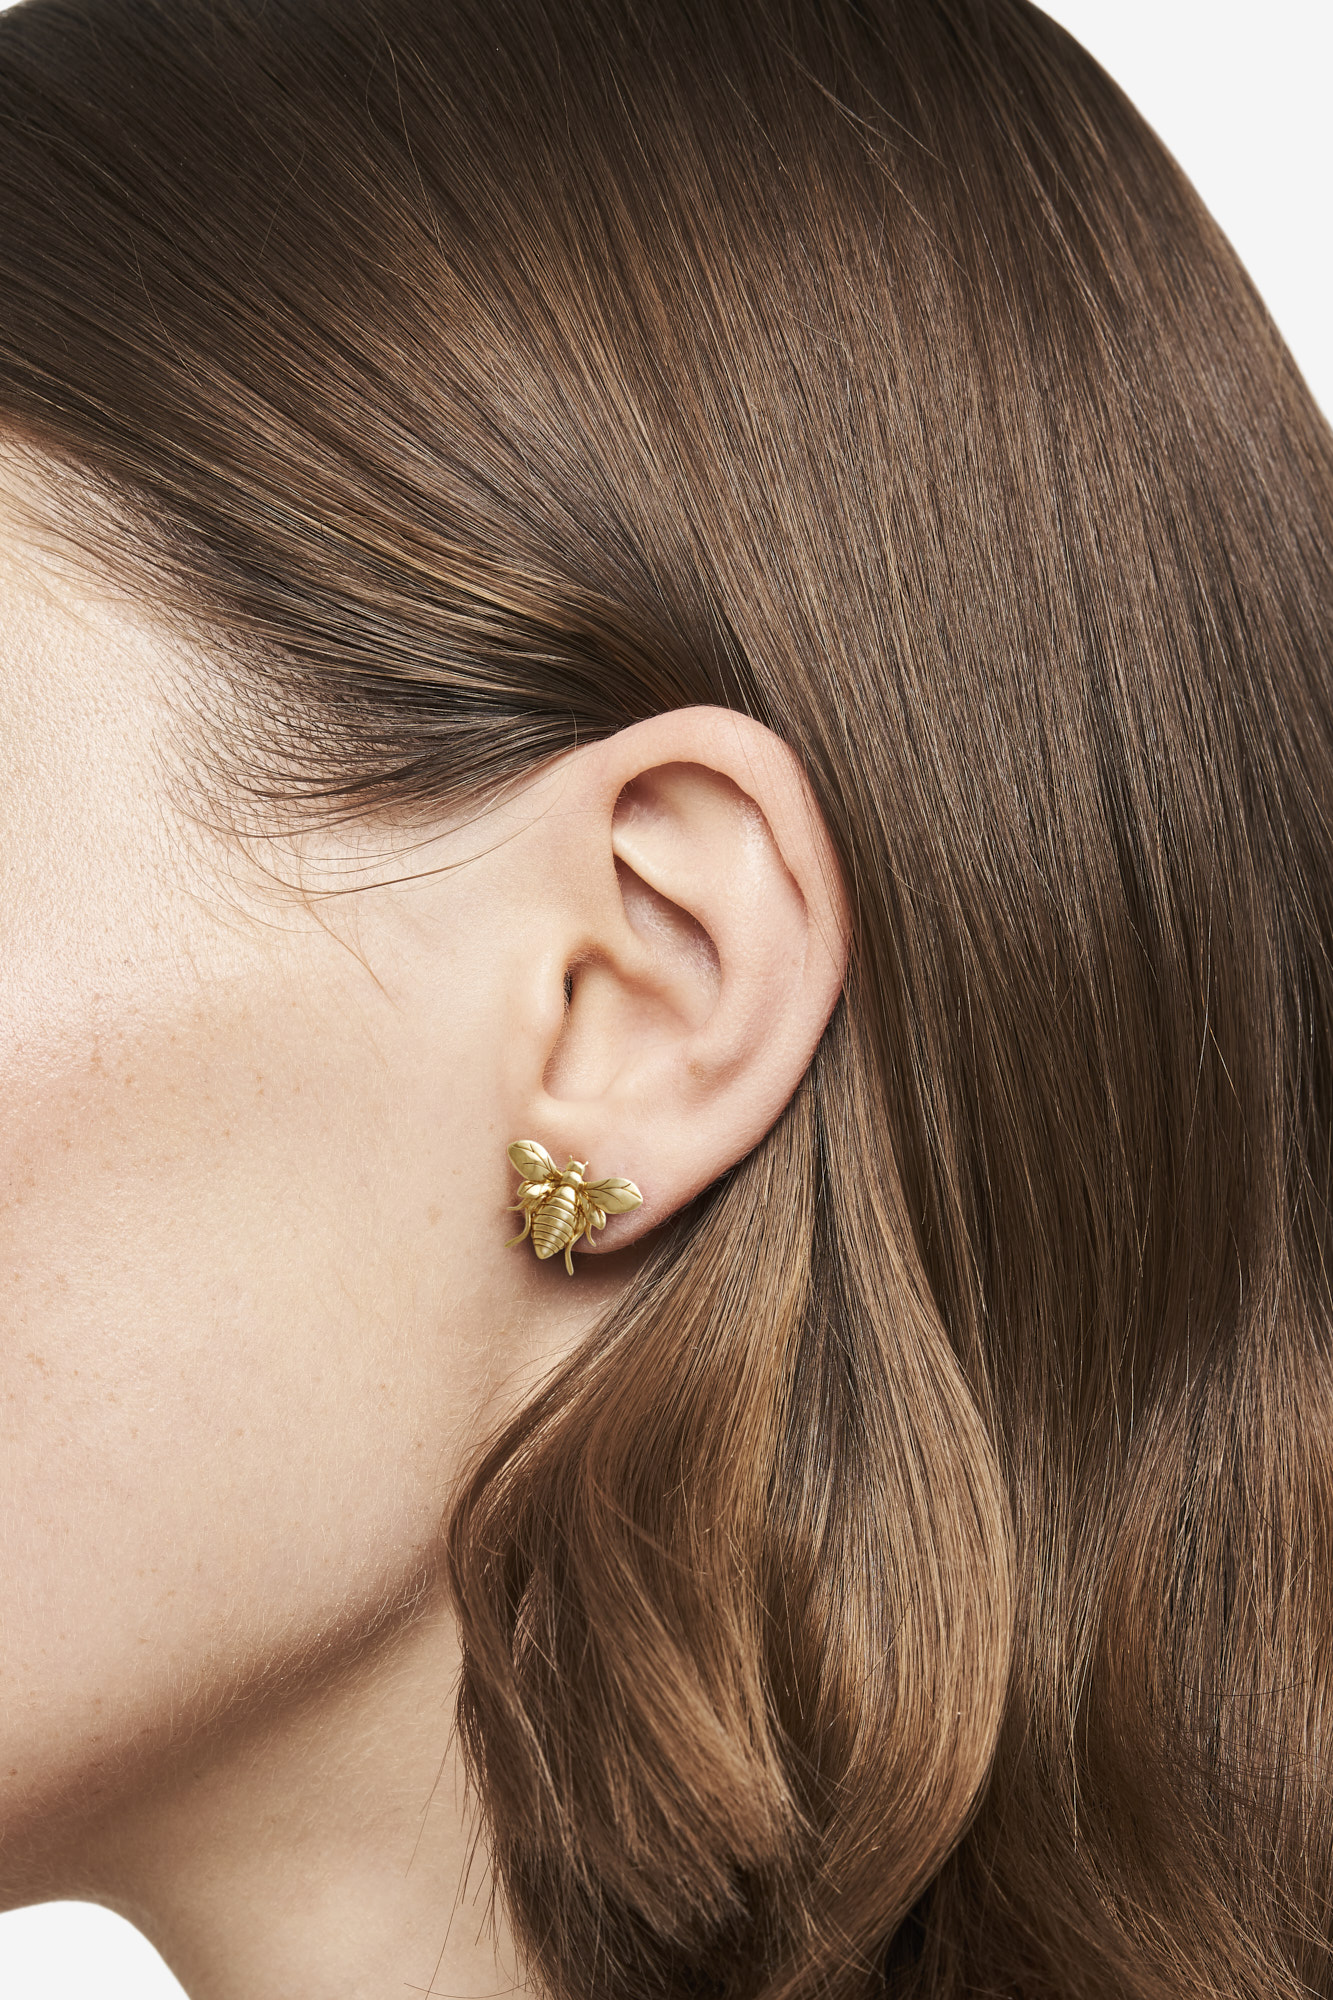 19-03-5-1-001-113-09_Bee Earring_Gold Plated_02